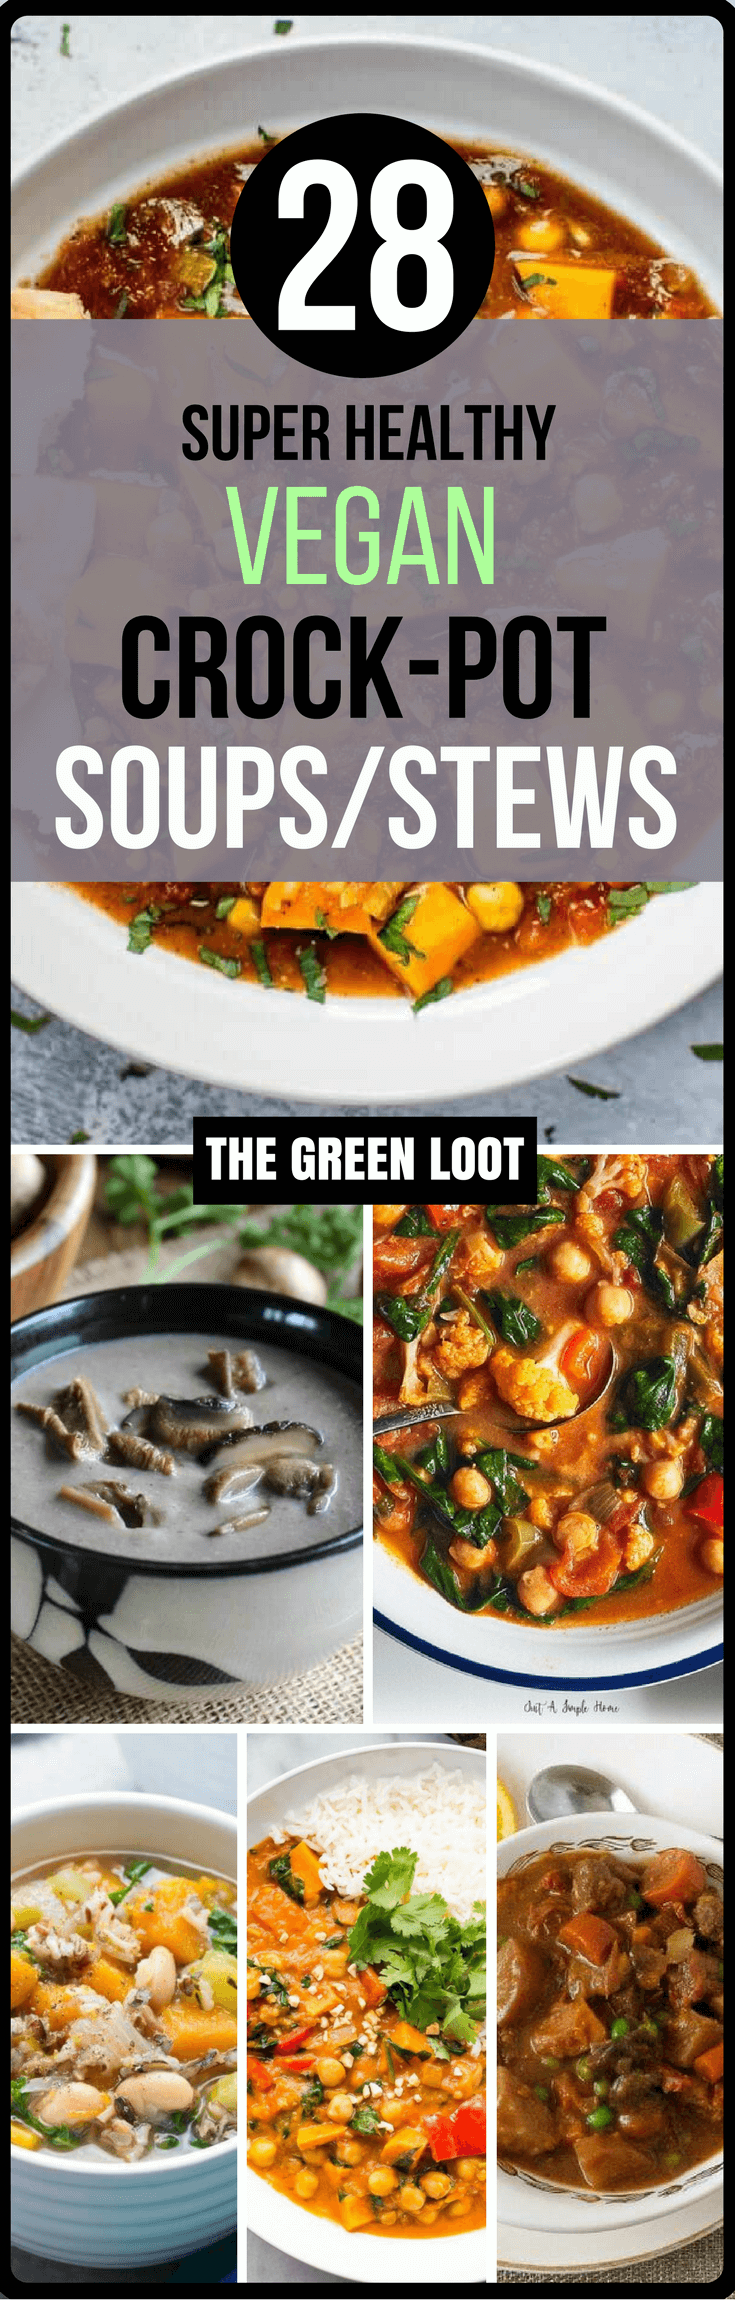 The best 28 vegan crockpot soups stews recipes easy for Crock pot vegetarian recipes healthy